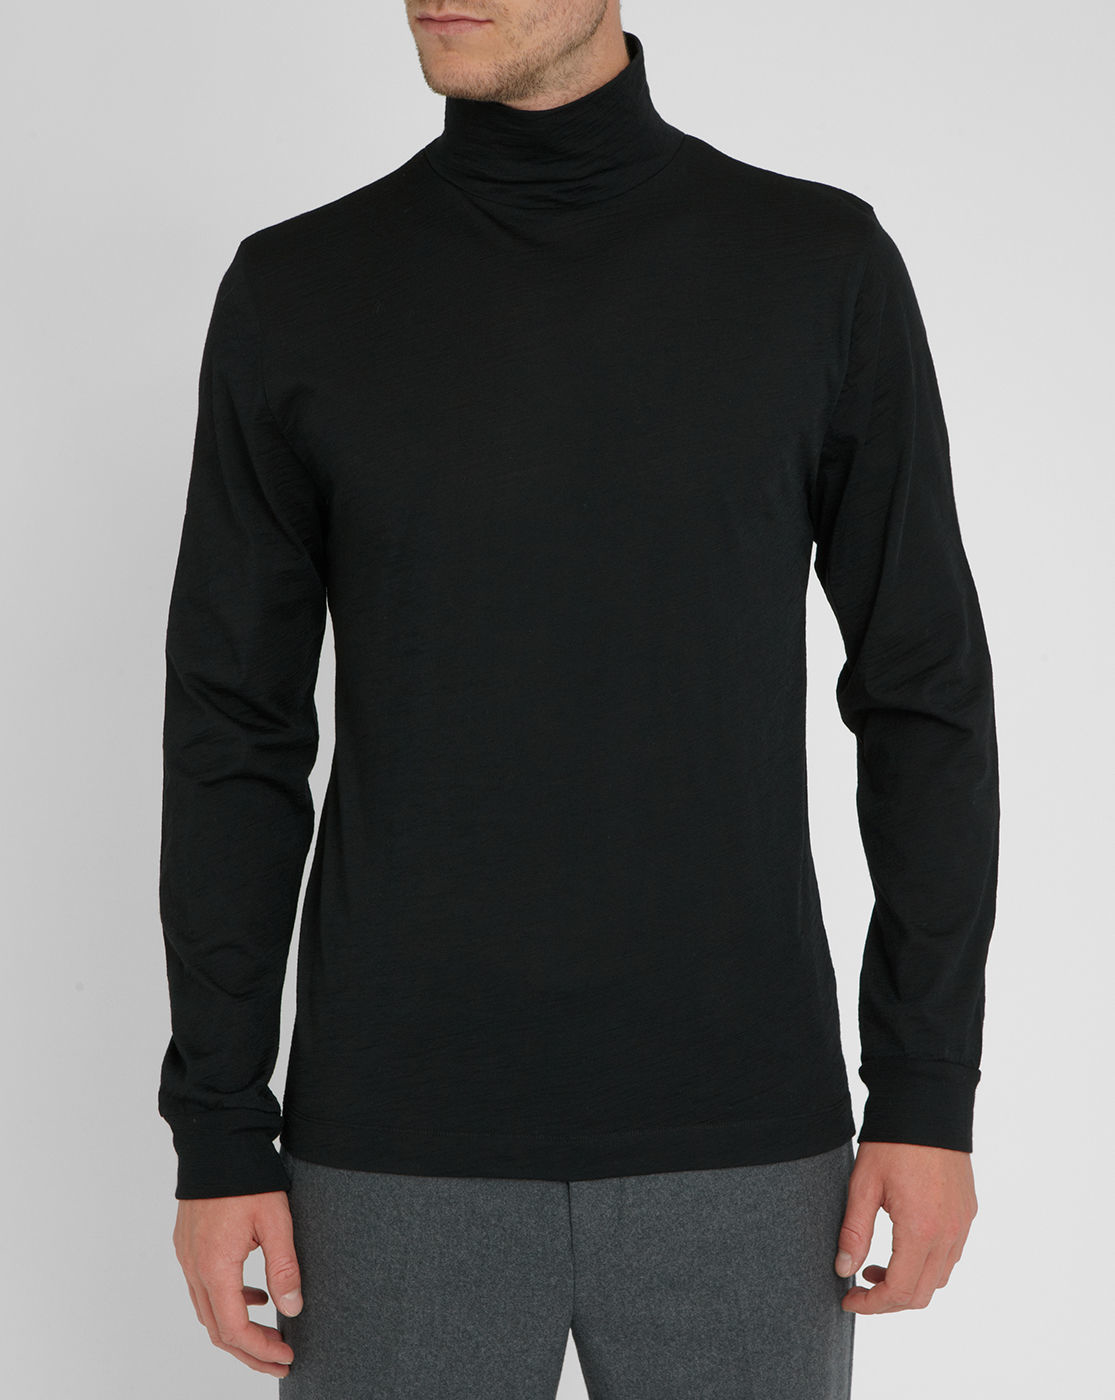 Black Polo Neck Sweaters: brands items Many shades of Black sale: up to −65% at Stylight» Shop now!